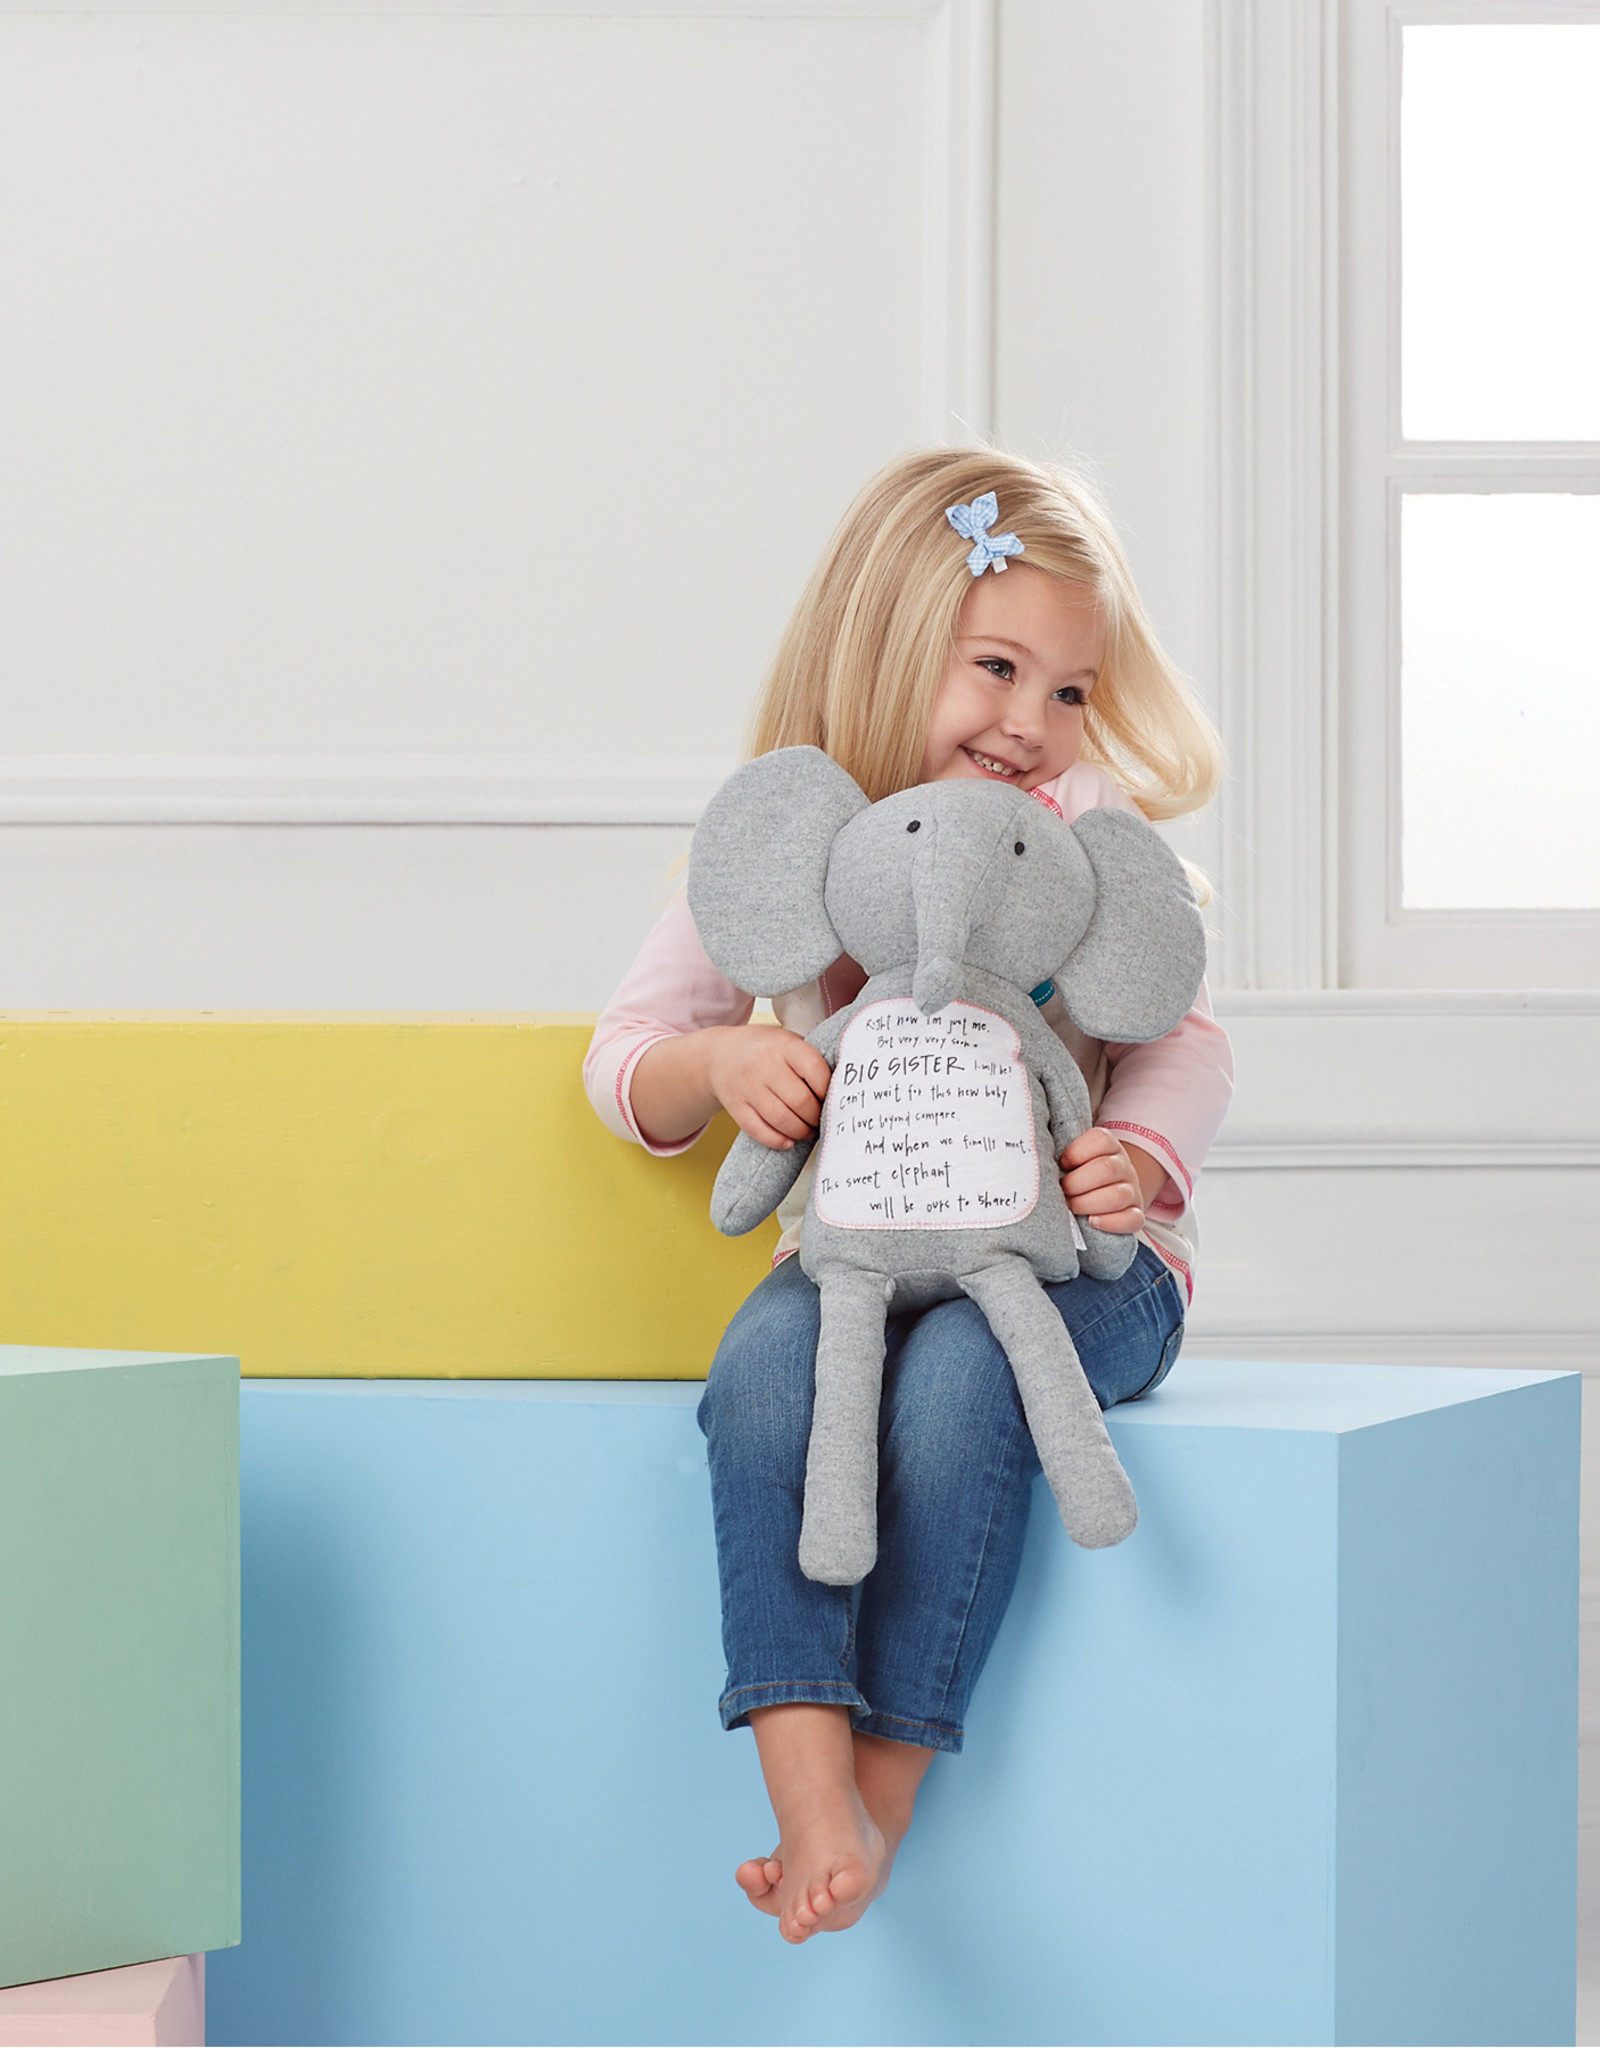 Mudpie Big Sister Elephant Plush